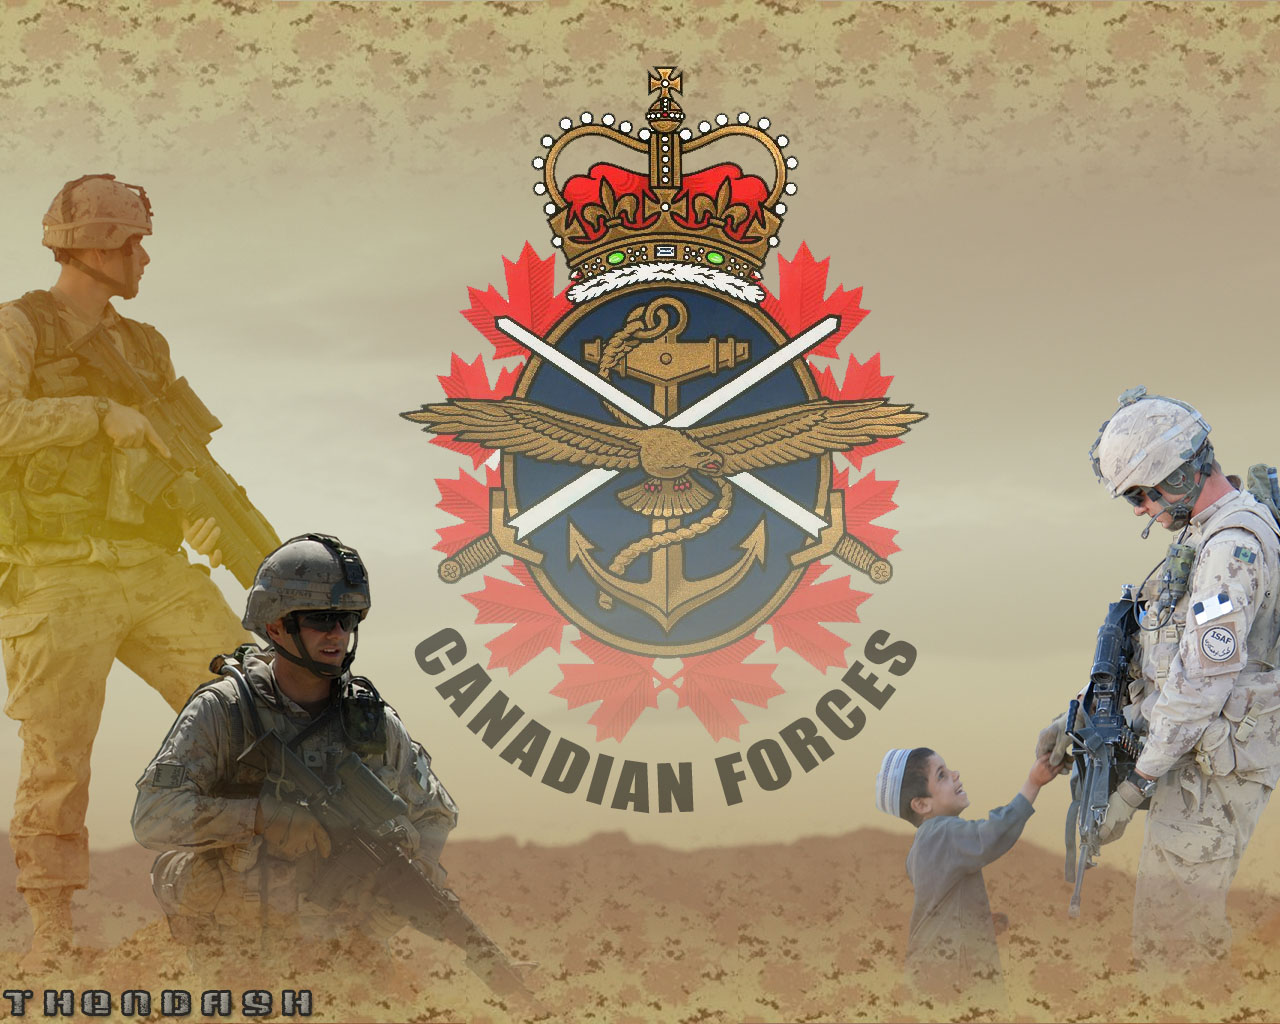 Canadian Forces Wallpaper Sand by Thendashjpg 1280x1024